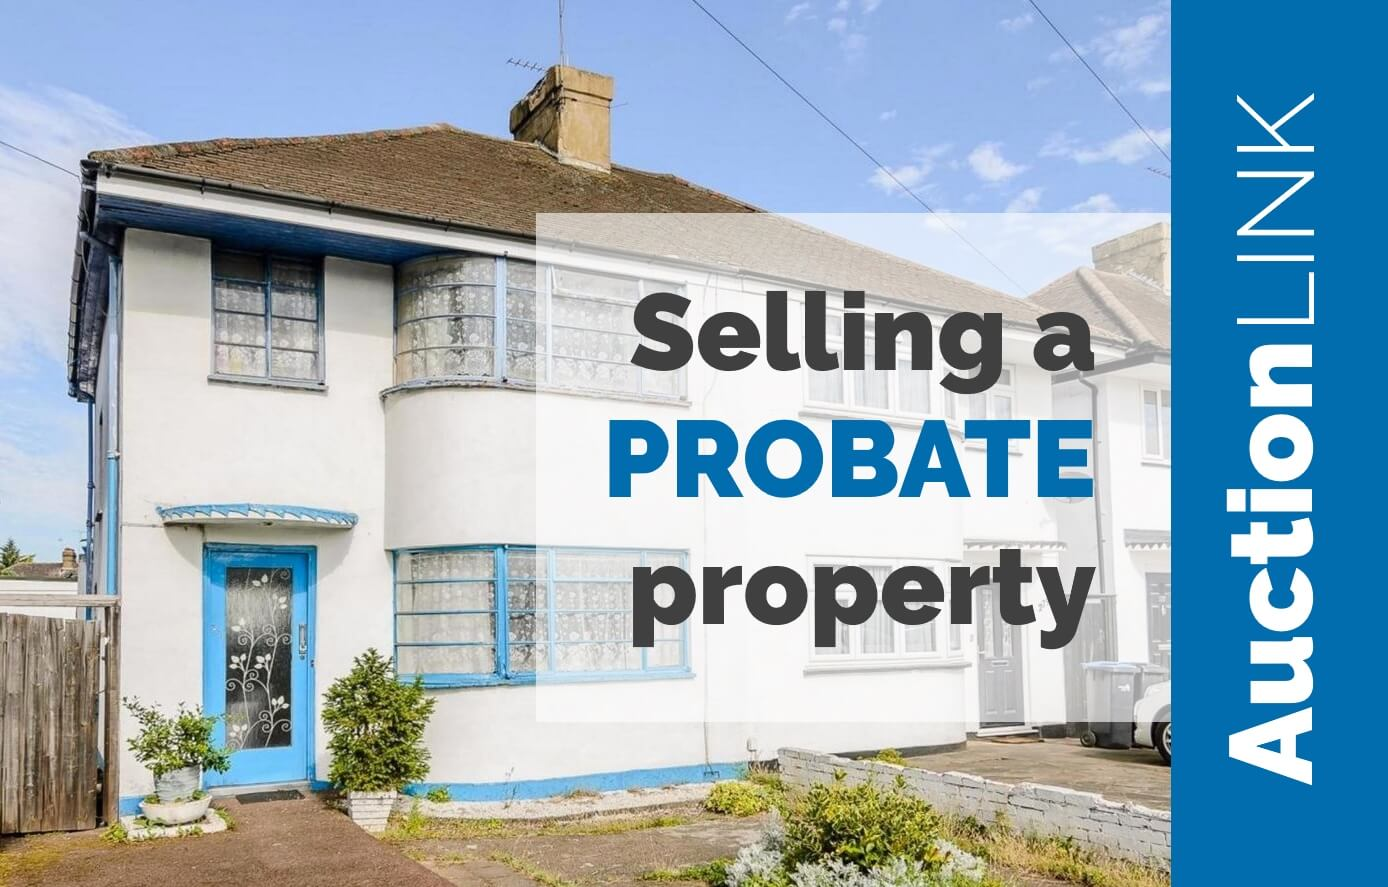 Selling a probate property